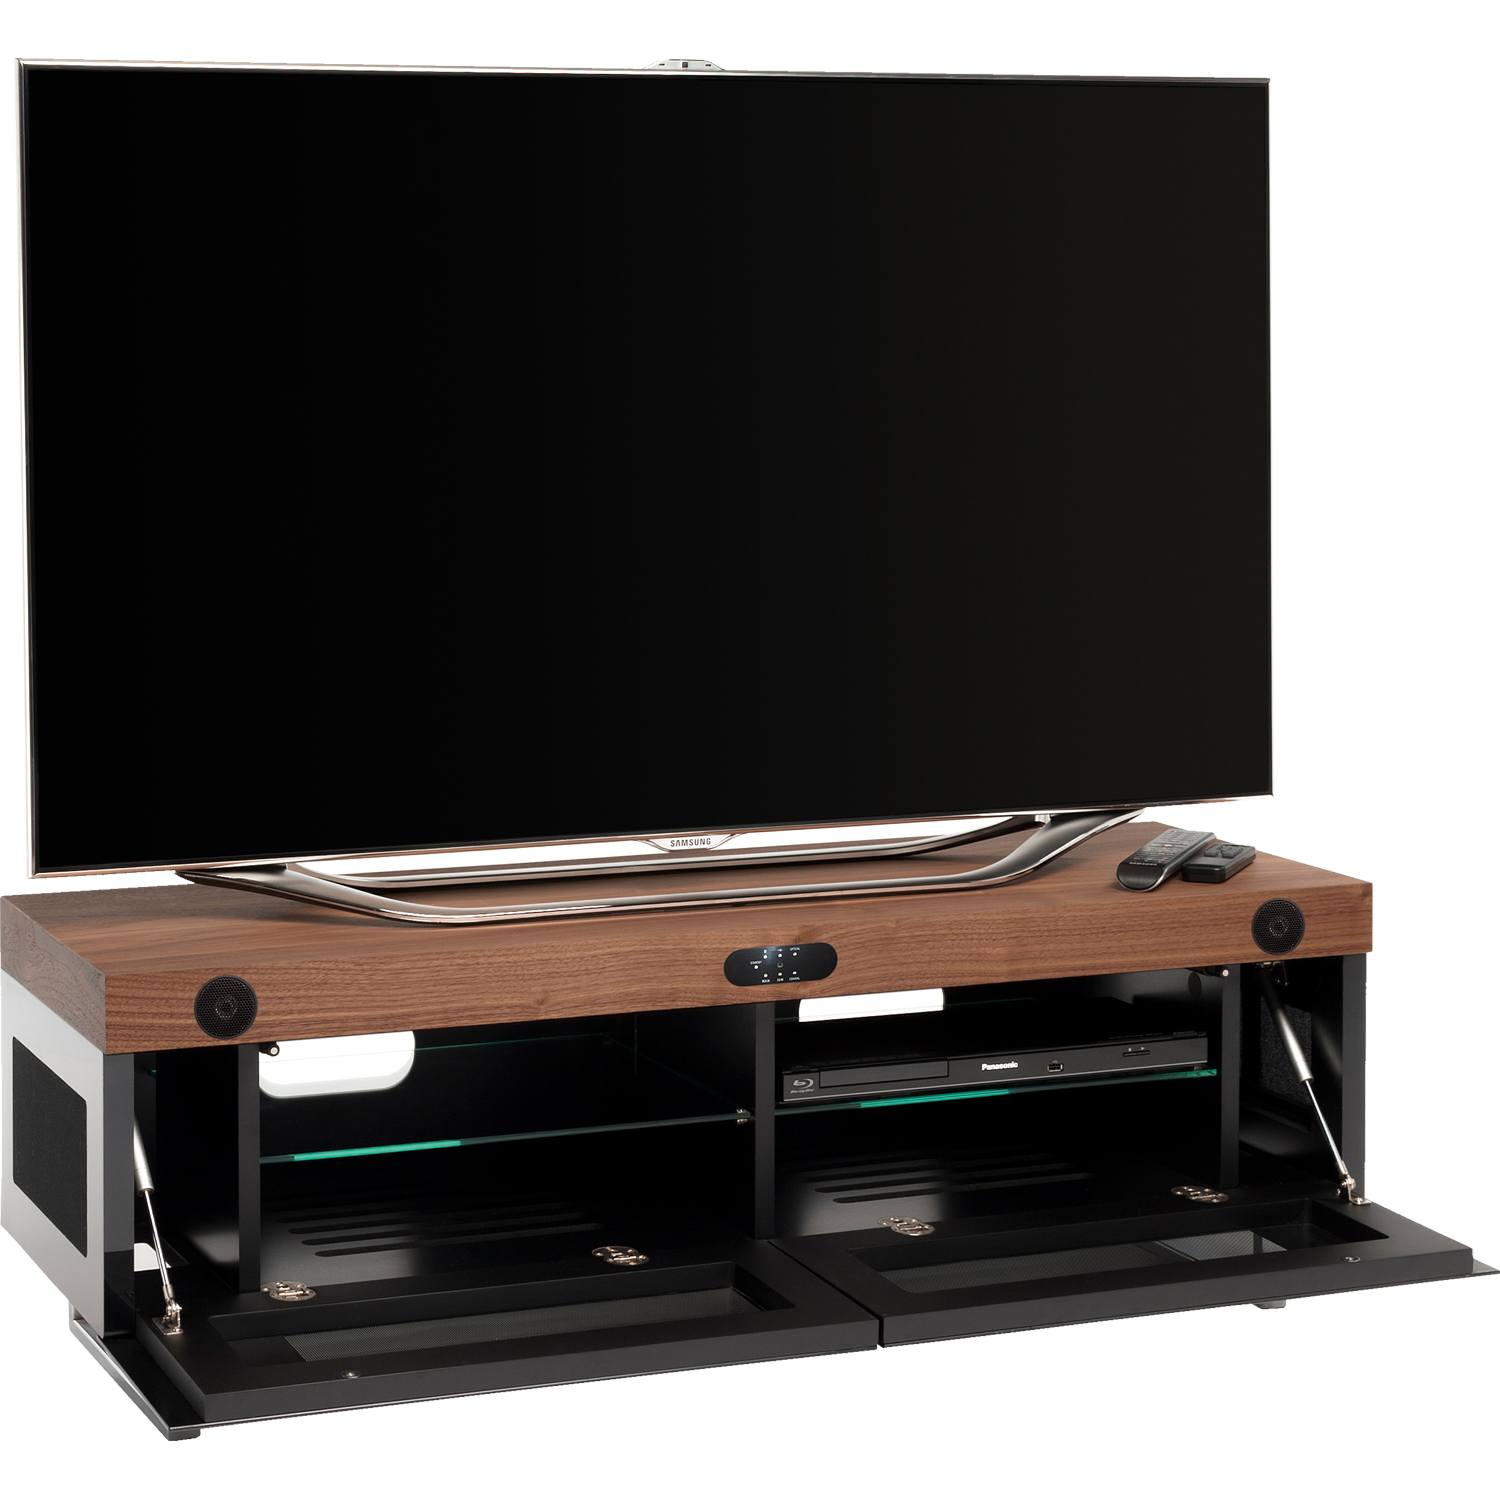 techlink panorama sound pm120sw tv stand up to 60 built in stereo system new ebay. Black Bedroom Furniture Sets. Home Design Ideas